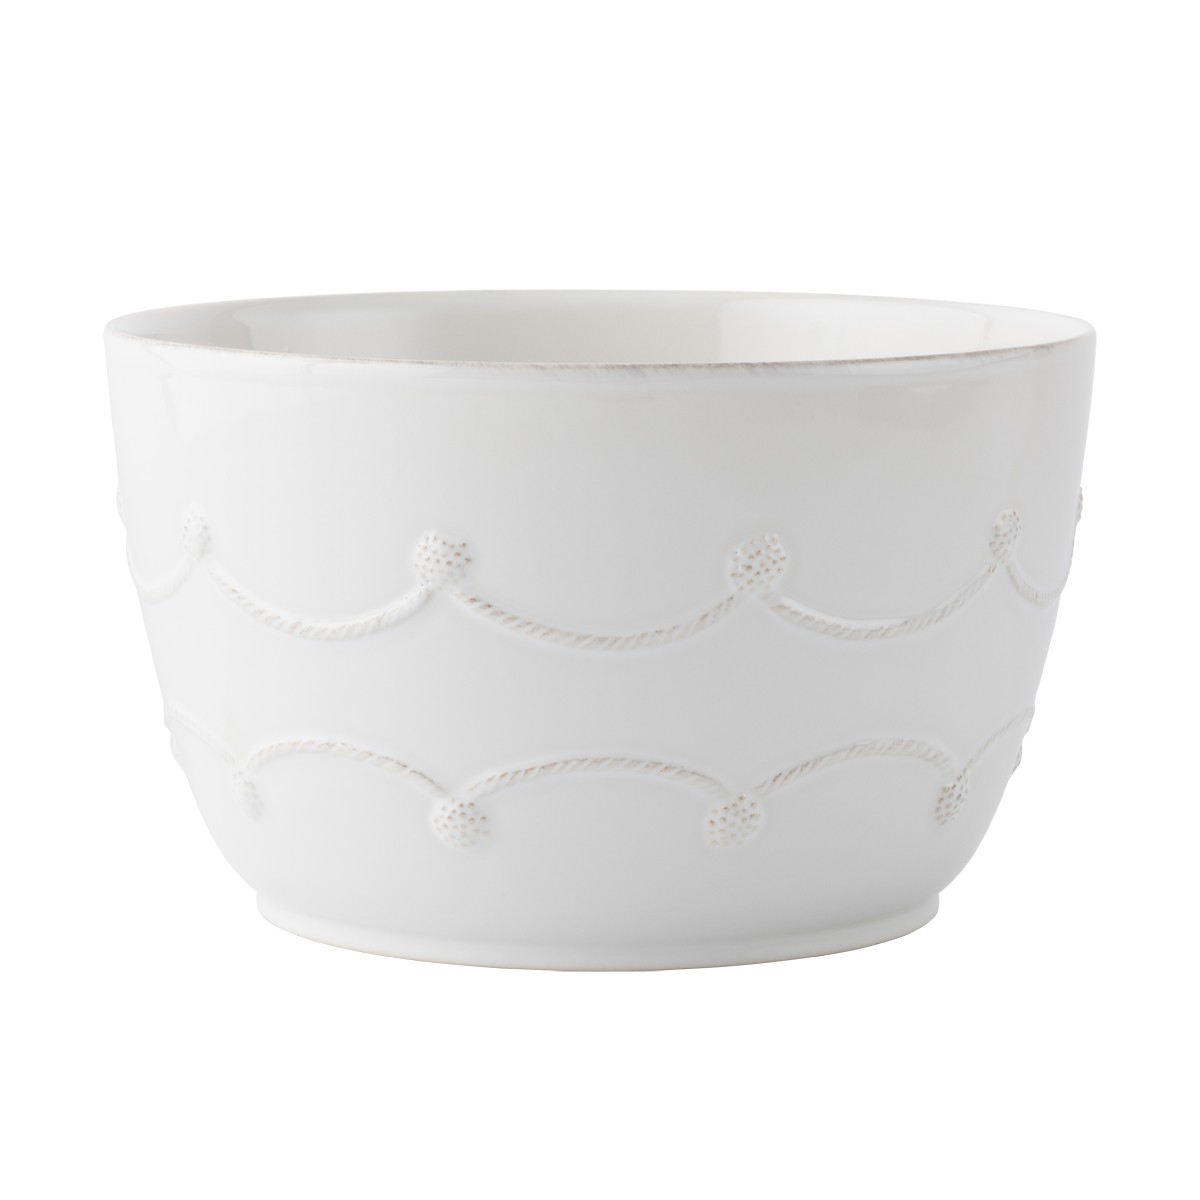 14373 - White Berry & Thread Serving Bowl - $88